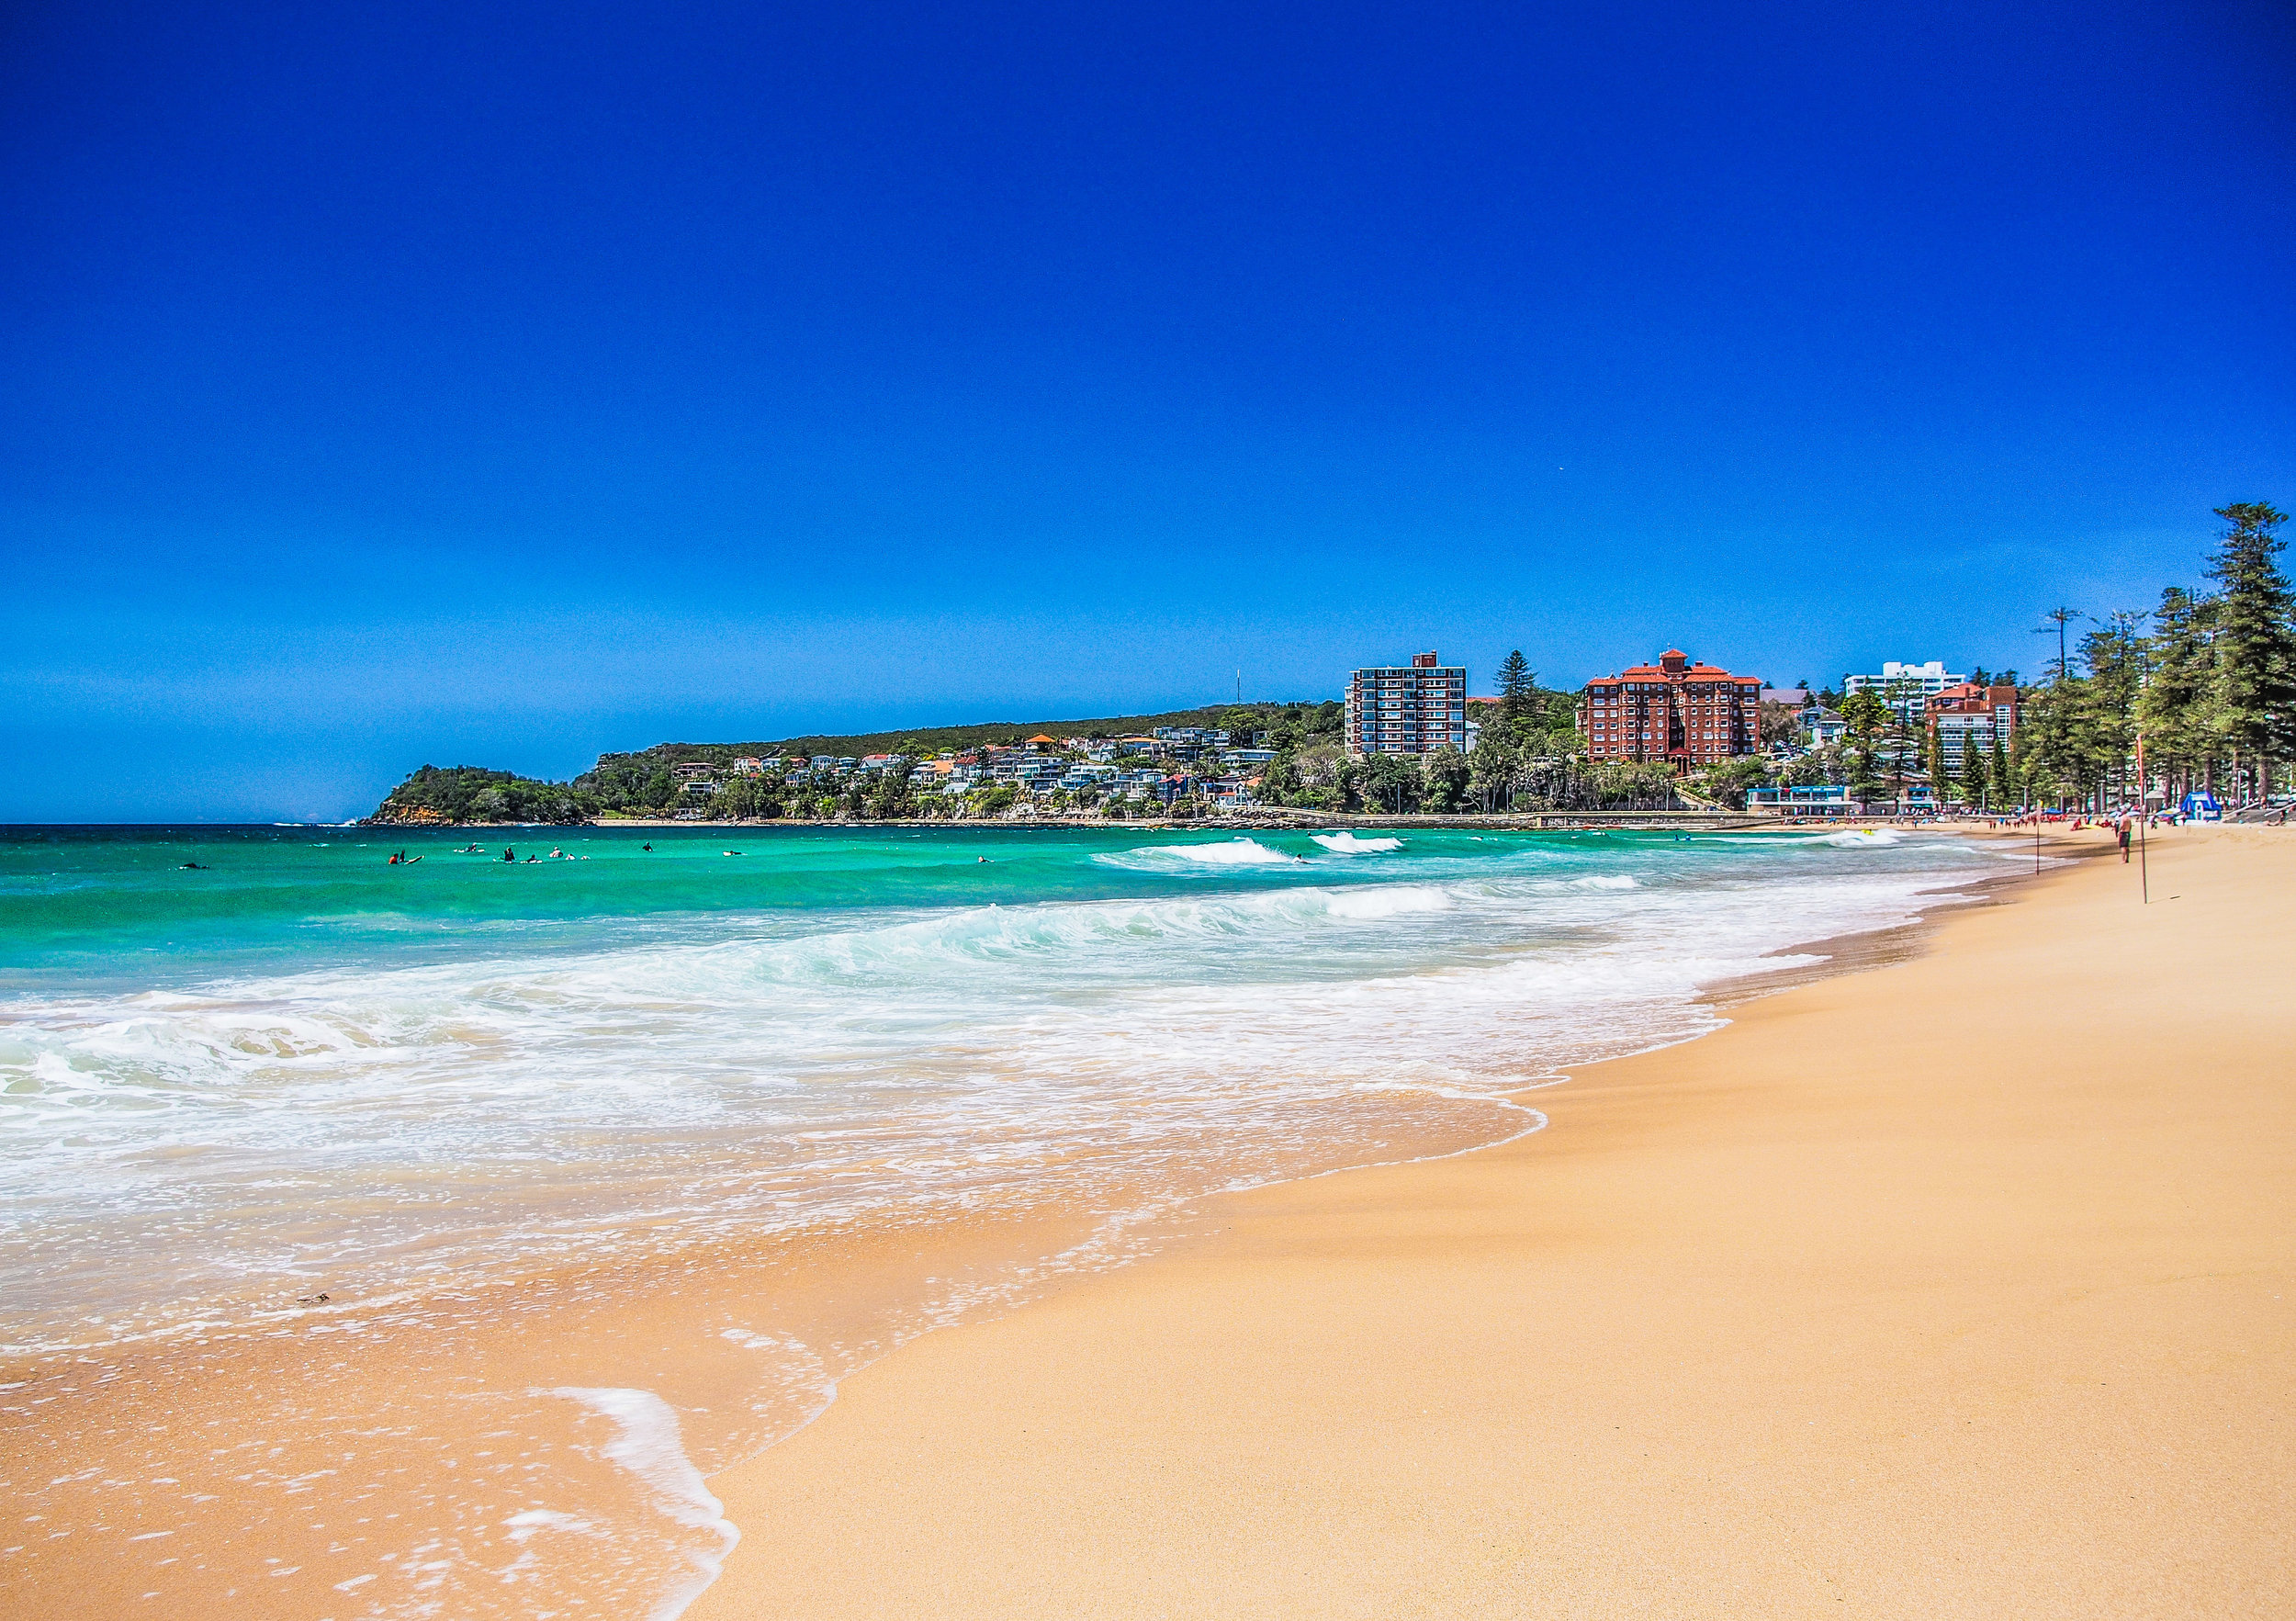 Manly Island